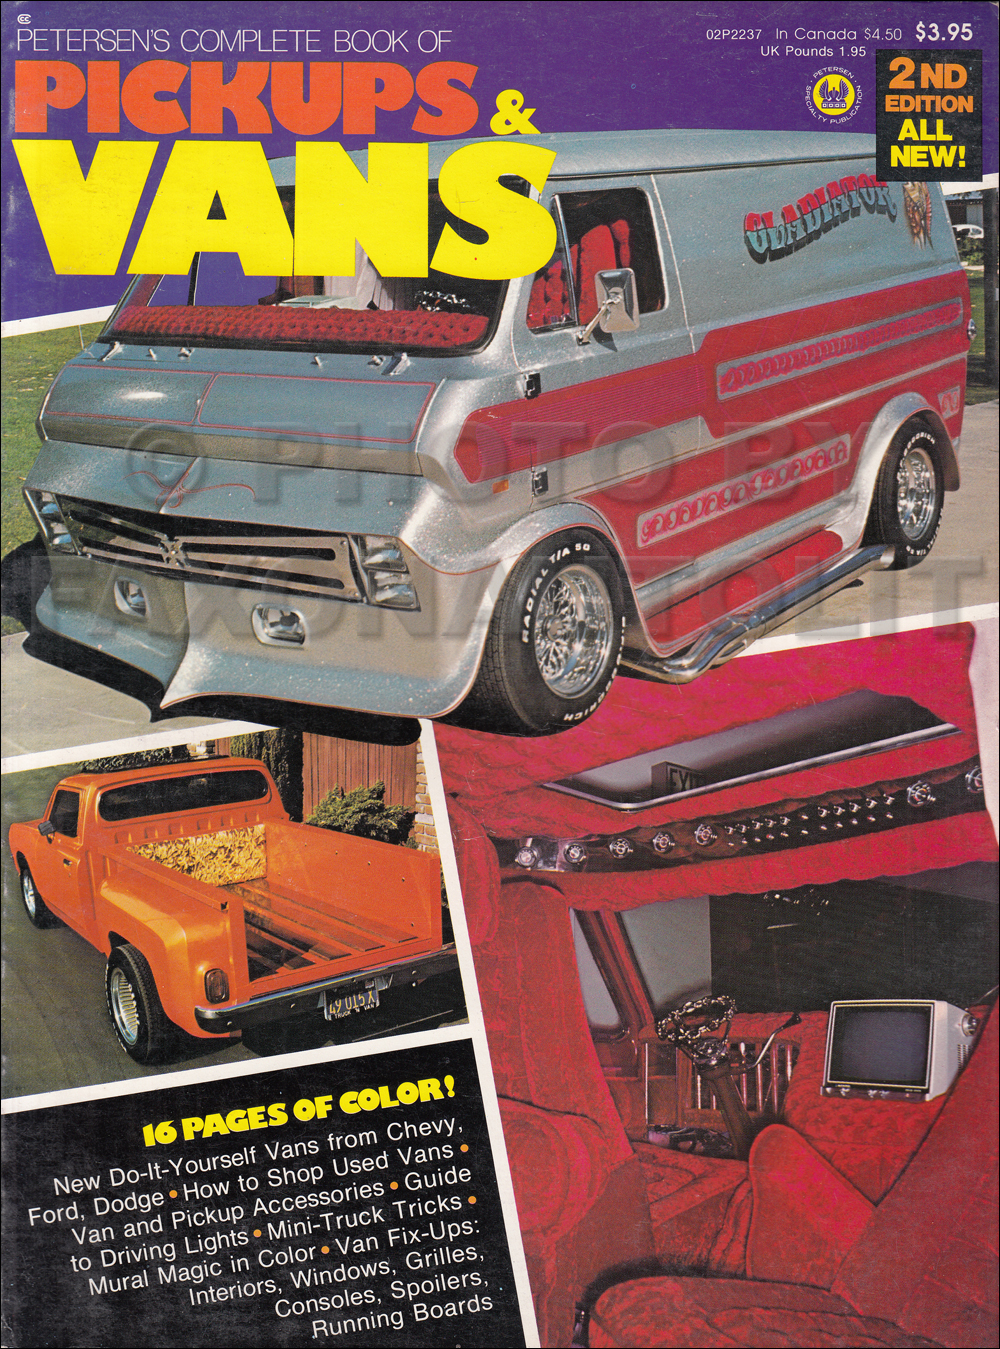 1961-1976 Petersen's Complete Book of Mini Pickups and Custom Vans 2nd Edition